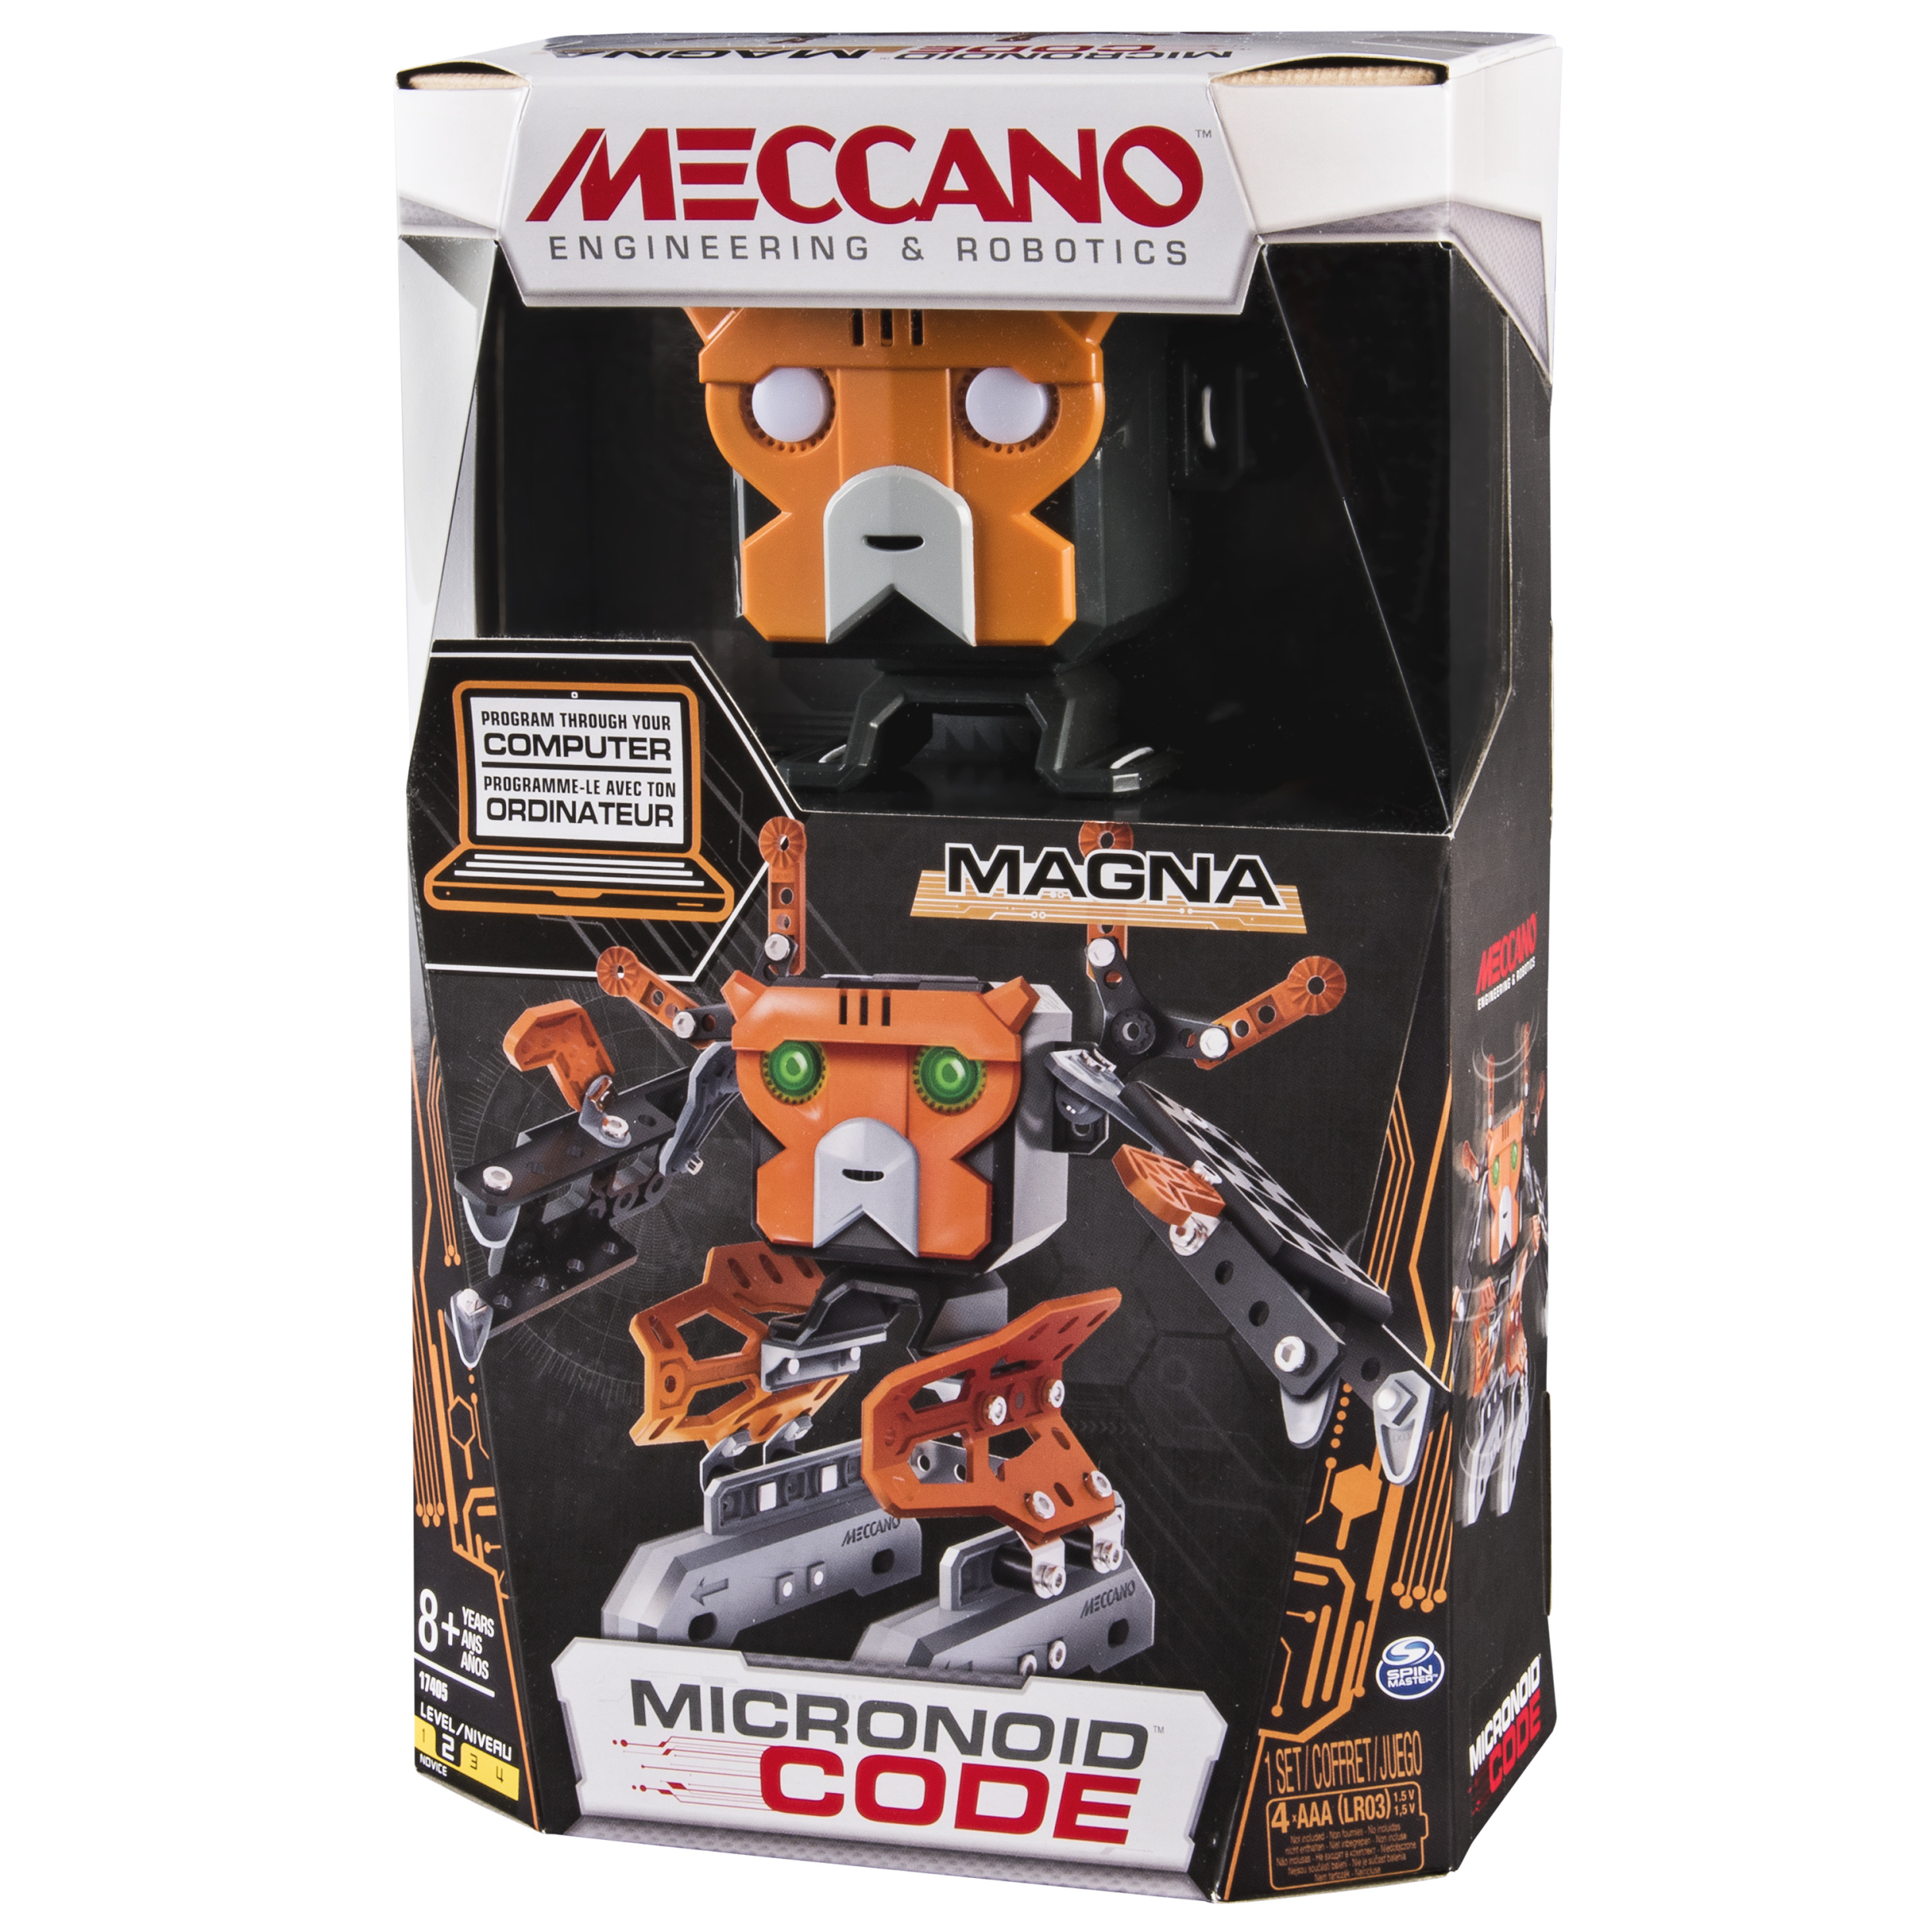 Meccano45erector 45 Micronoid Code Magna Programmable Robot Control Your Meccano Models Or Anything Else From Windows Pc Building Kit